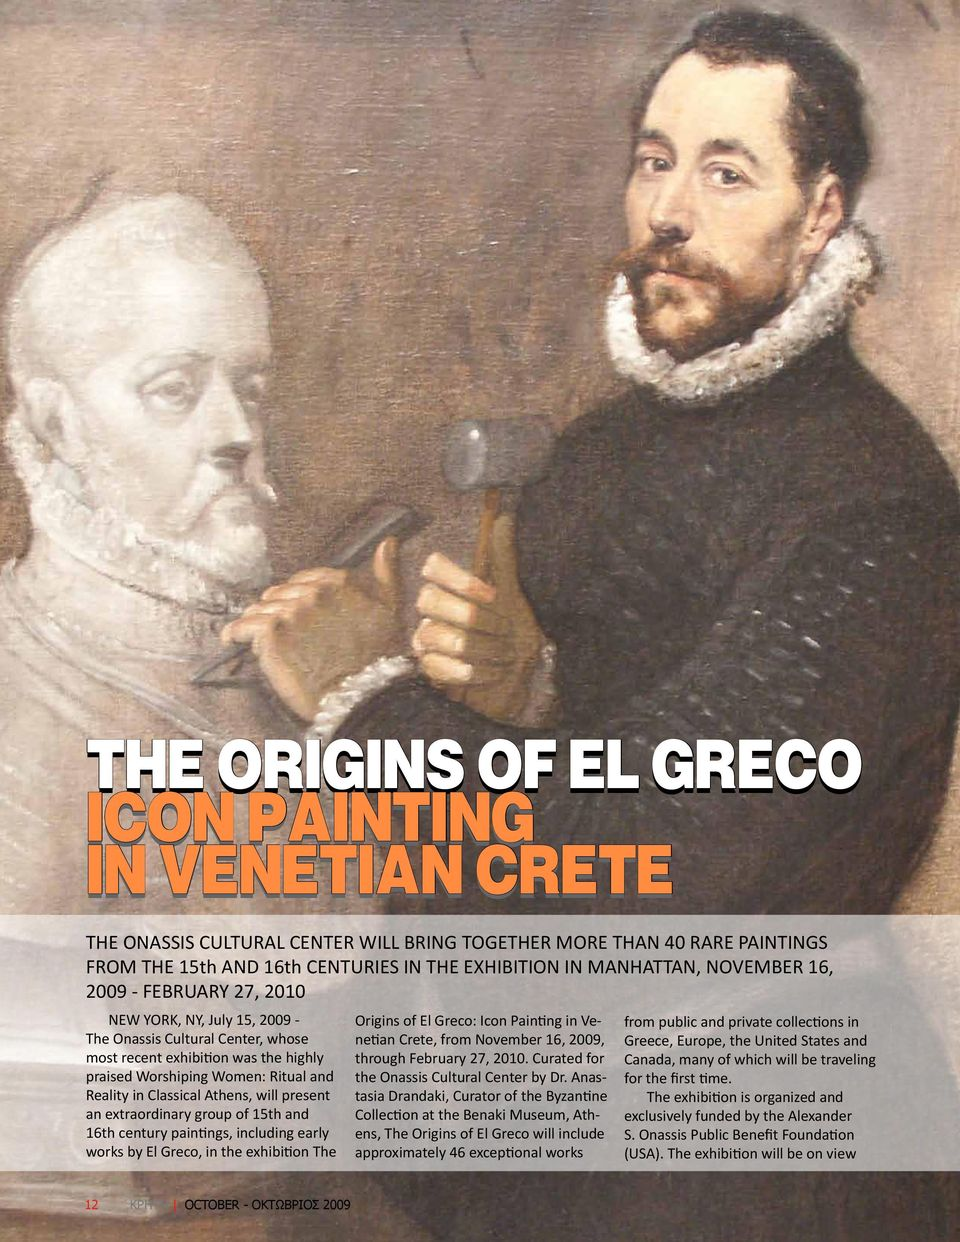 Athens, will present an extraordinary group of 15th and 16th century paintings, including early works by El Greco, in the exhibition The Origins of El Greco: Icon Painting in Venetian Crete, from